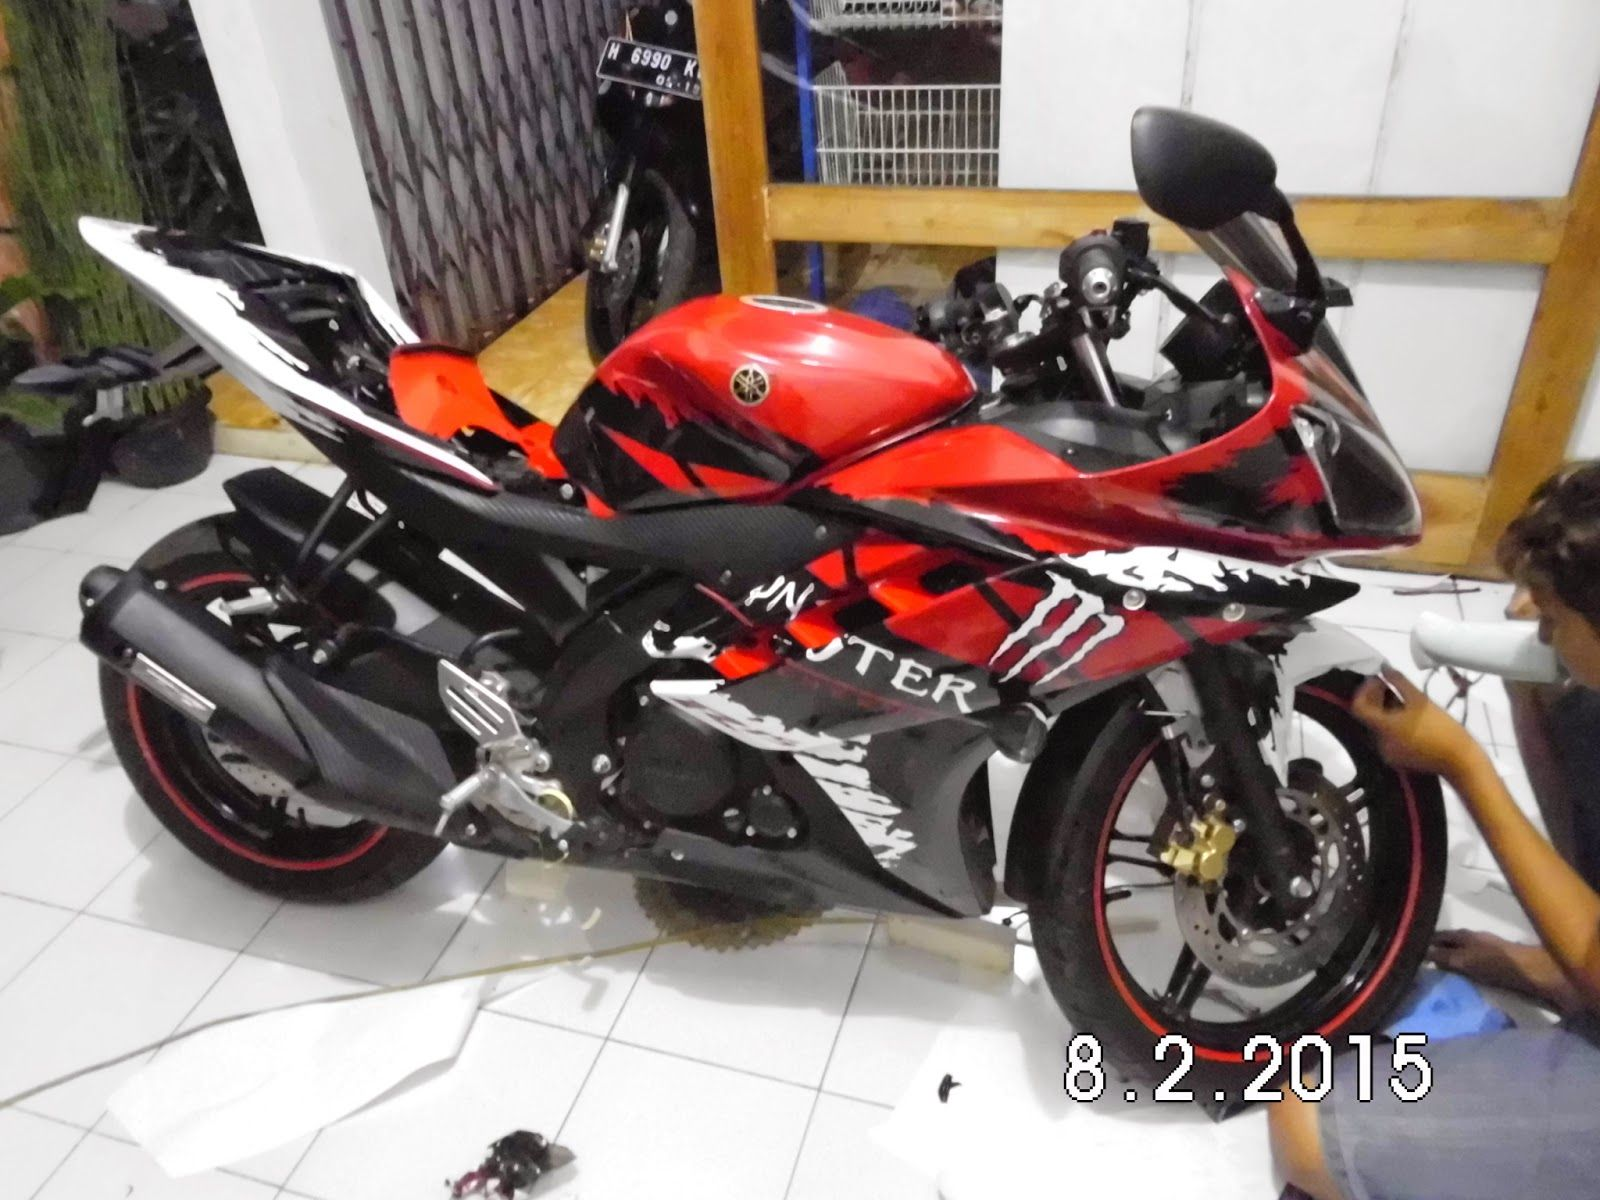 Lemuel Produksi Decal Vinyl Striping Motor Custom Yamaha R - Best custom vinyl decals for motorcycle seat